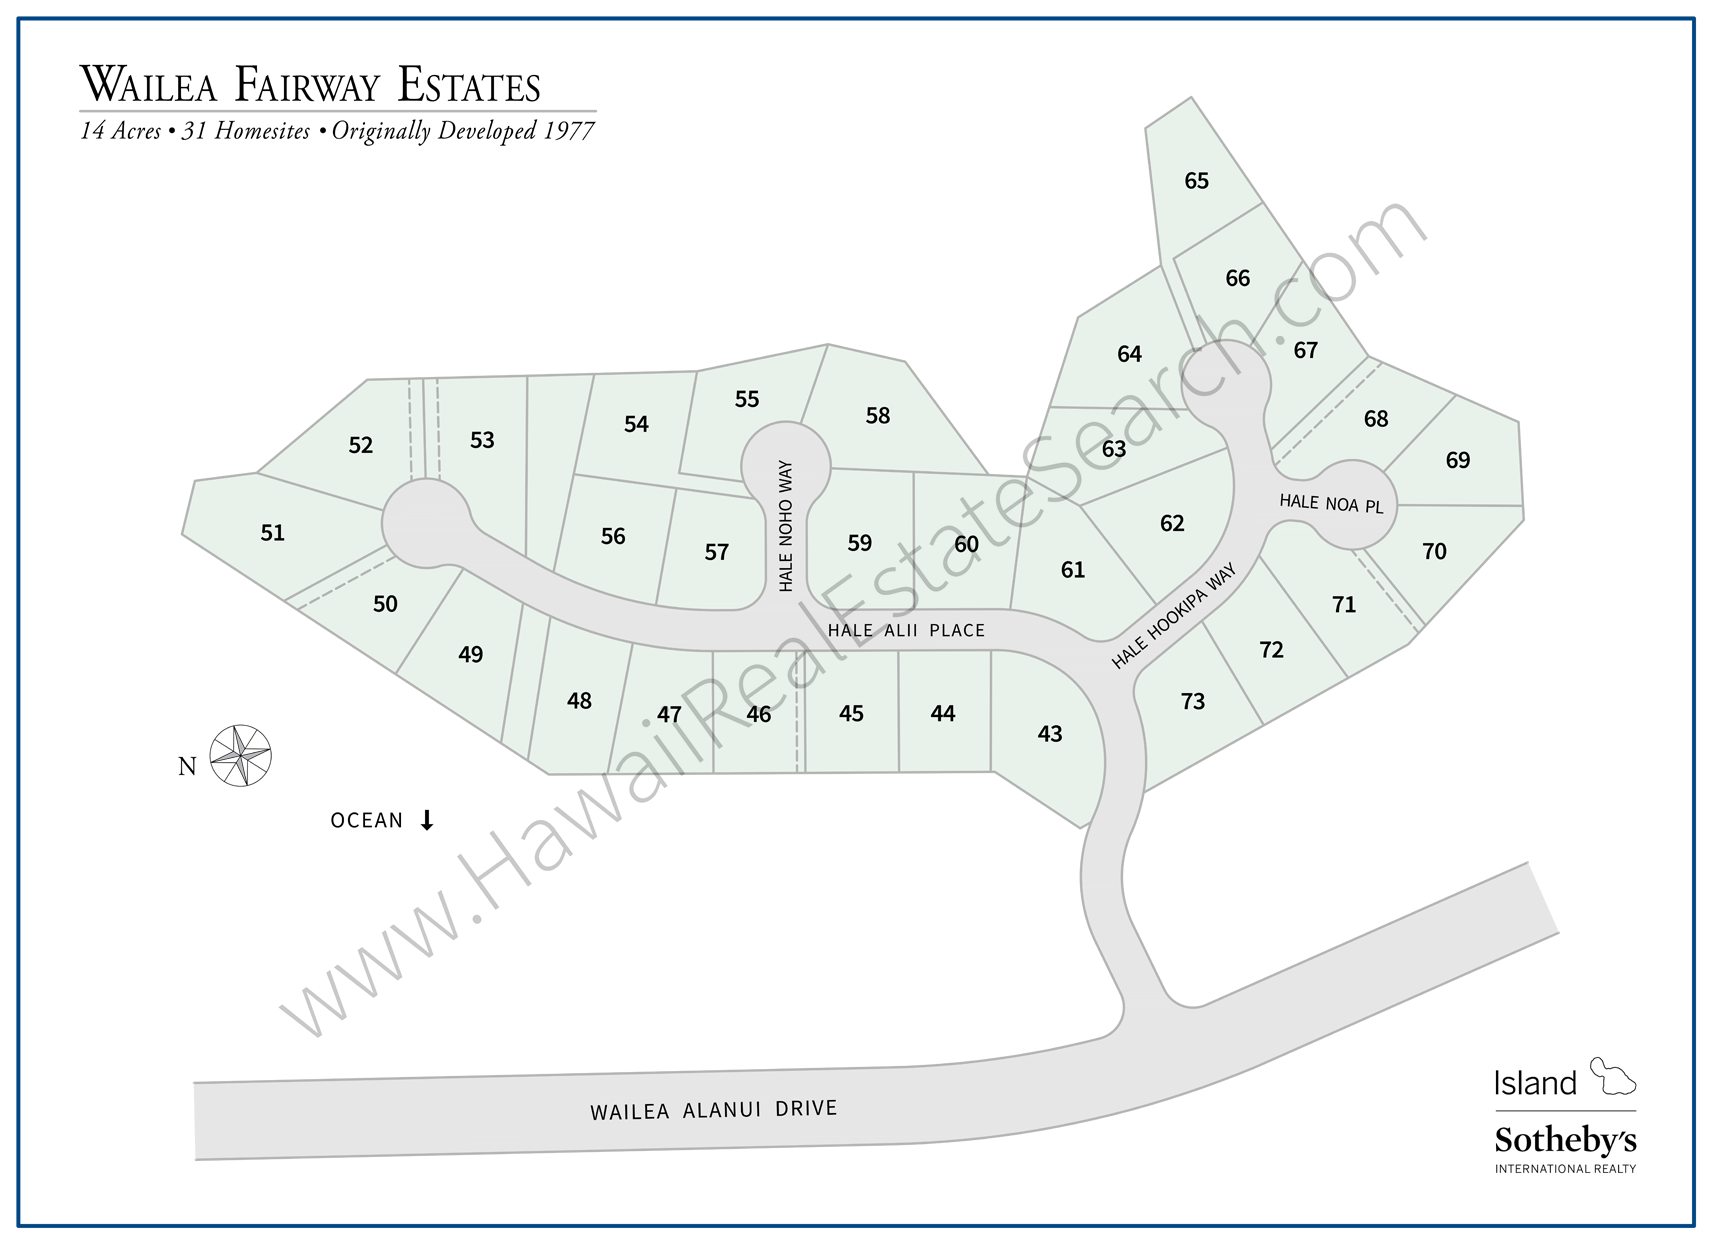 Wailea Fairway Estates Map